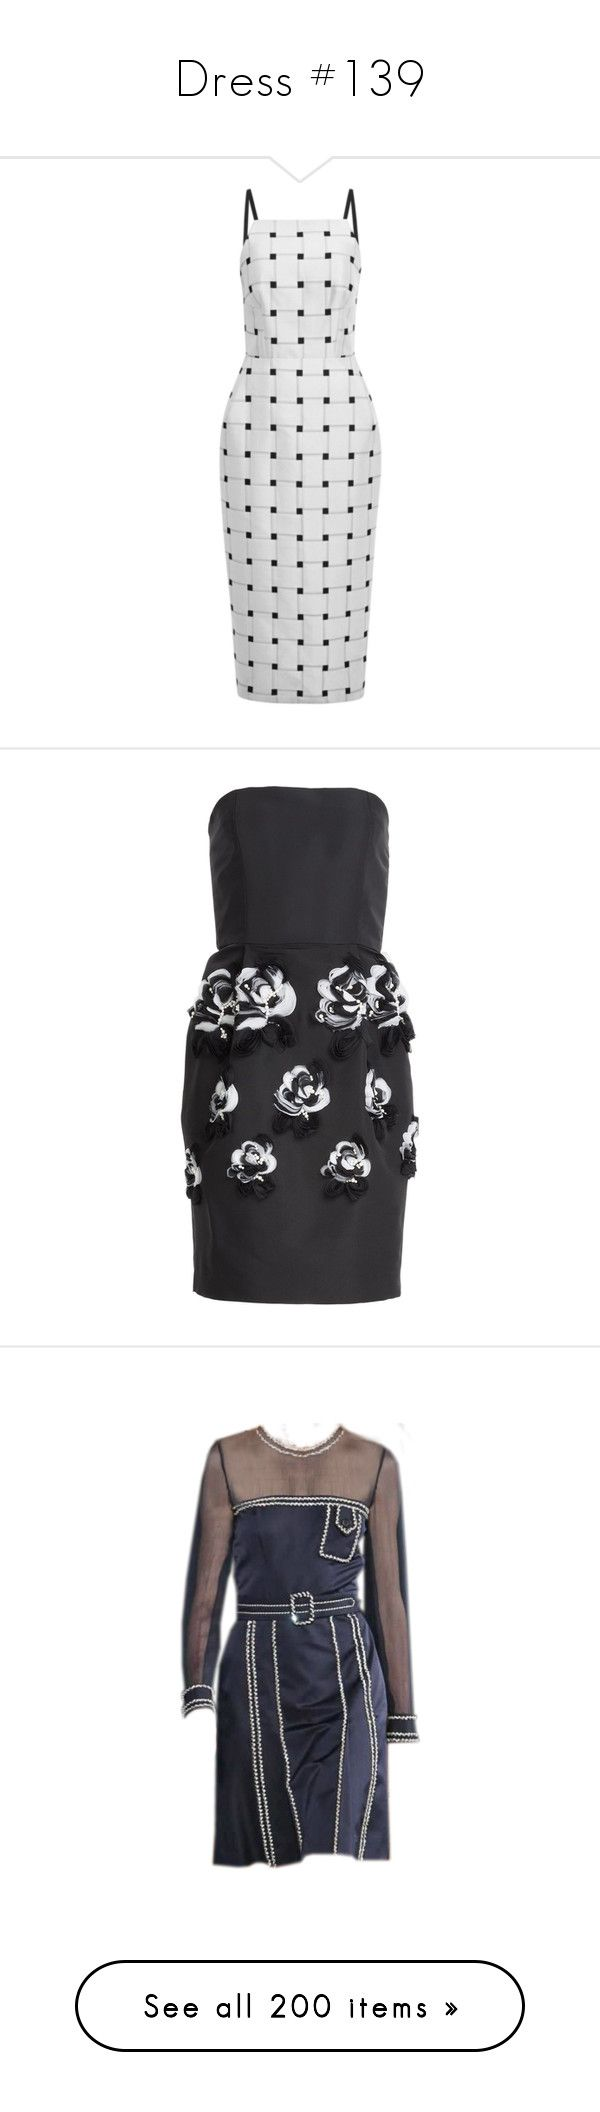 """""""Dress #139"""" by bliznec-anna ❤ liked on Polyvore featuring dresses, vestidos, josh goot dress, white black dress, jacquard dress, black and white body con dress, black white bodycon dress, prabal gurung, black and form fitting dresses"""